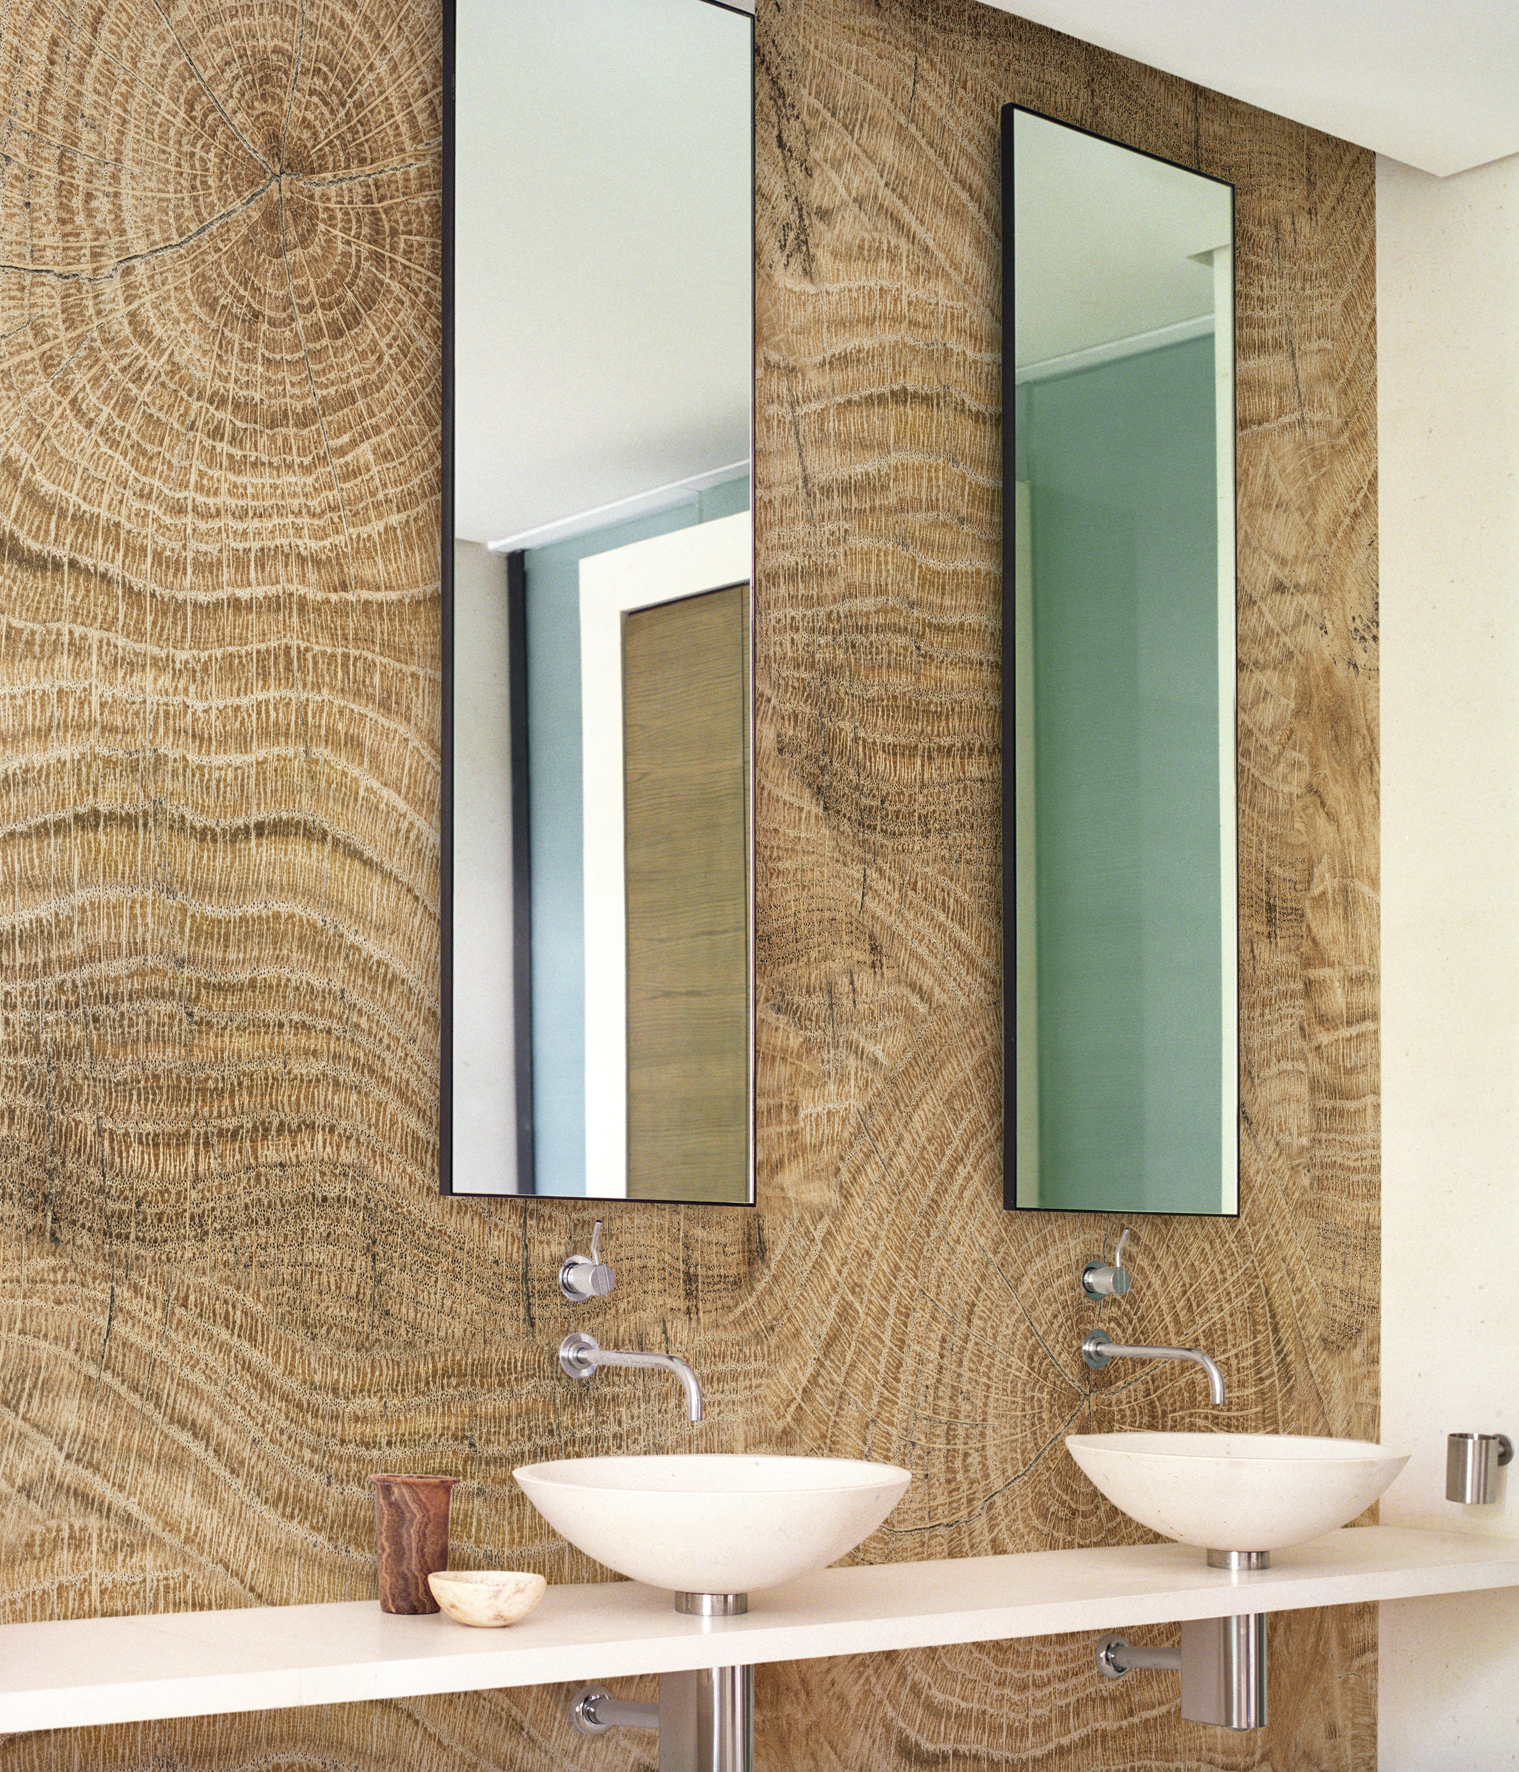 Wood Effect Bathroom Wallpaper LIFE LINES By Wall&decò